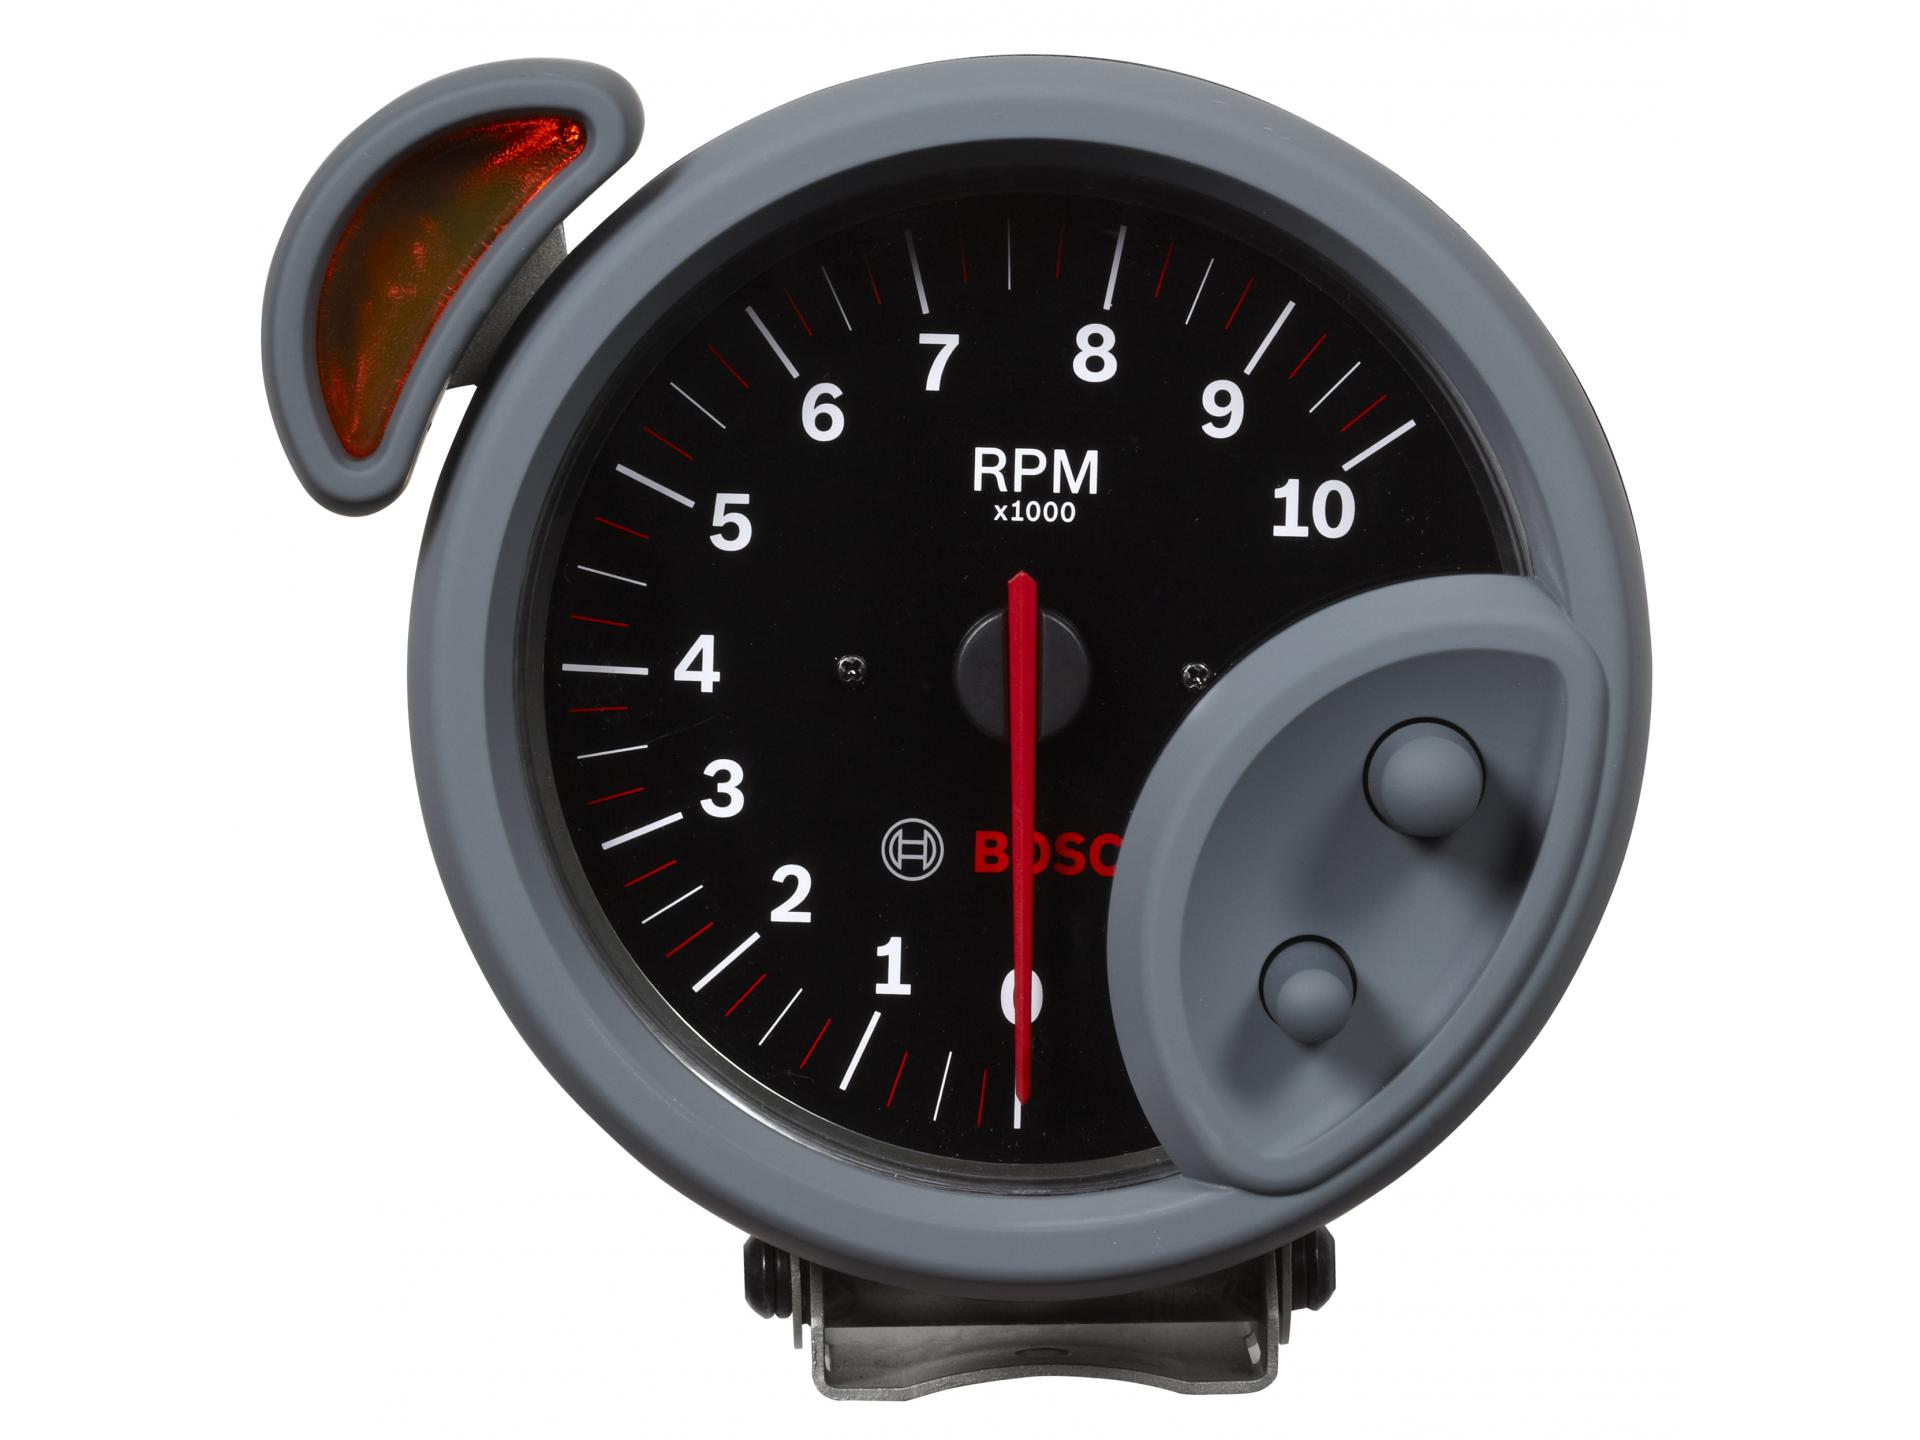 Auto Gauge Tach Wiring Diagram Free Download | Wiring ... on